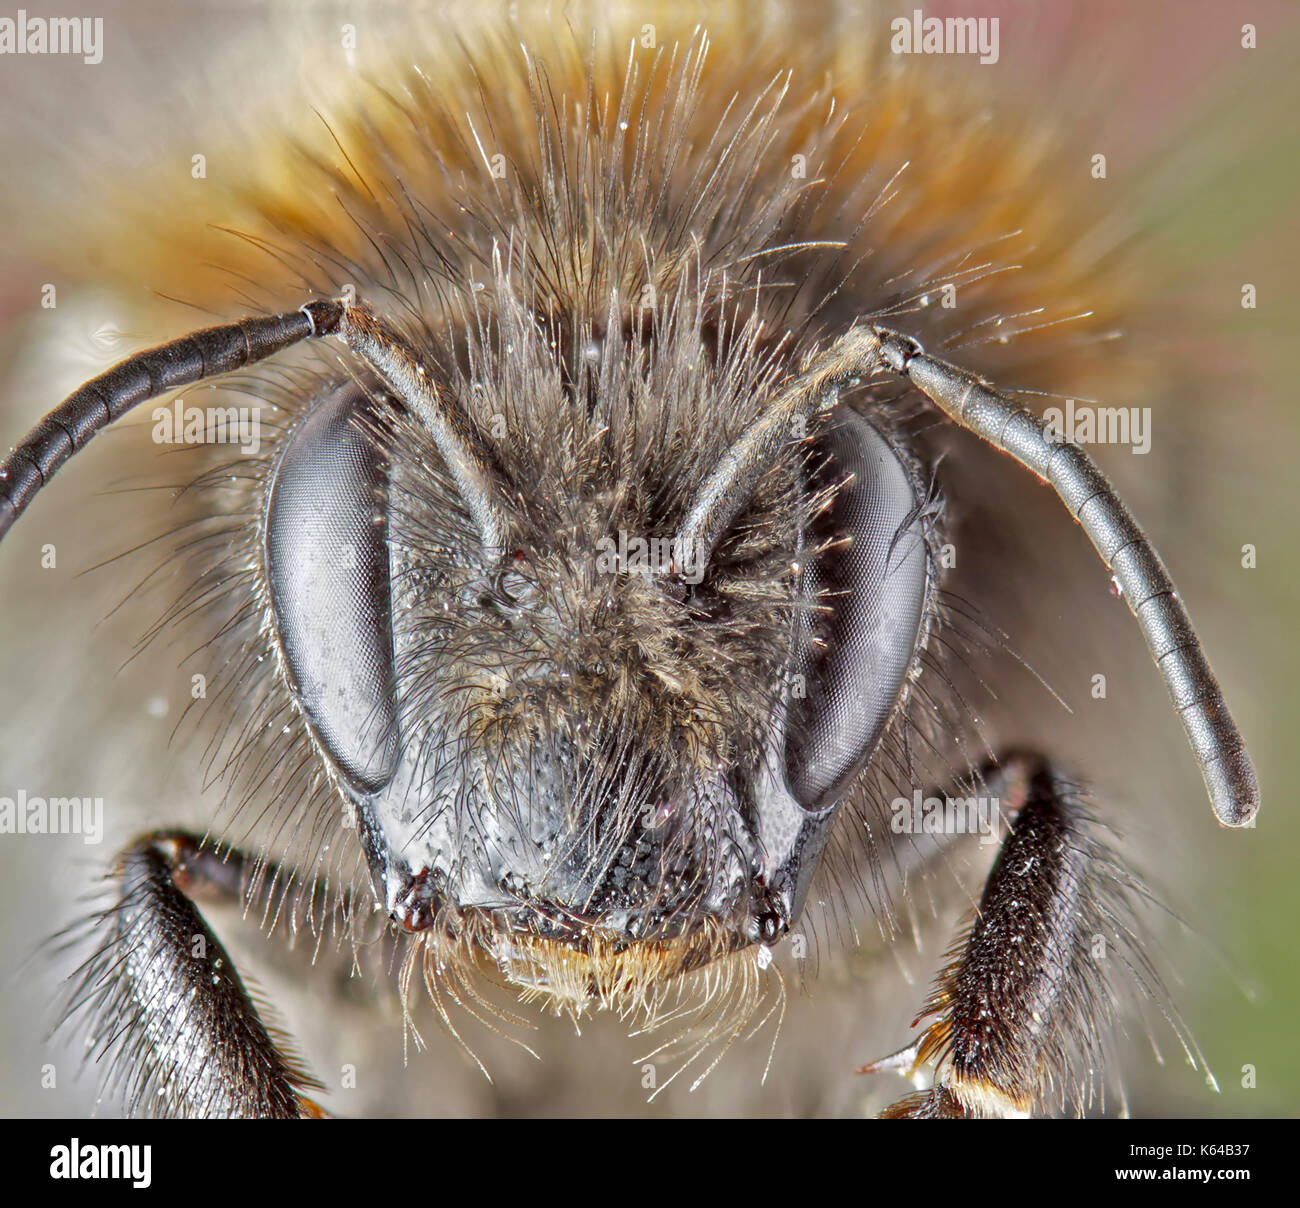 Super-macro of a bee - Stock Image